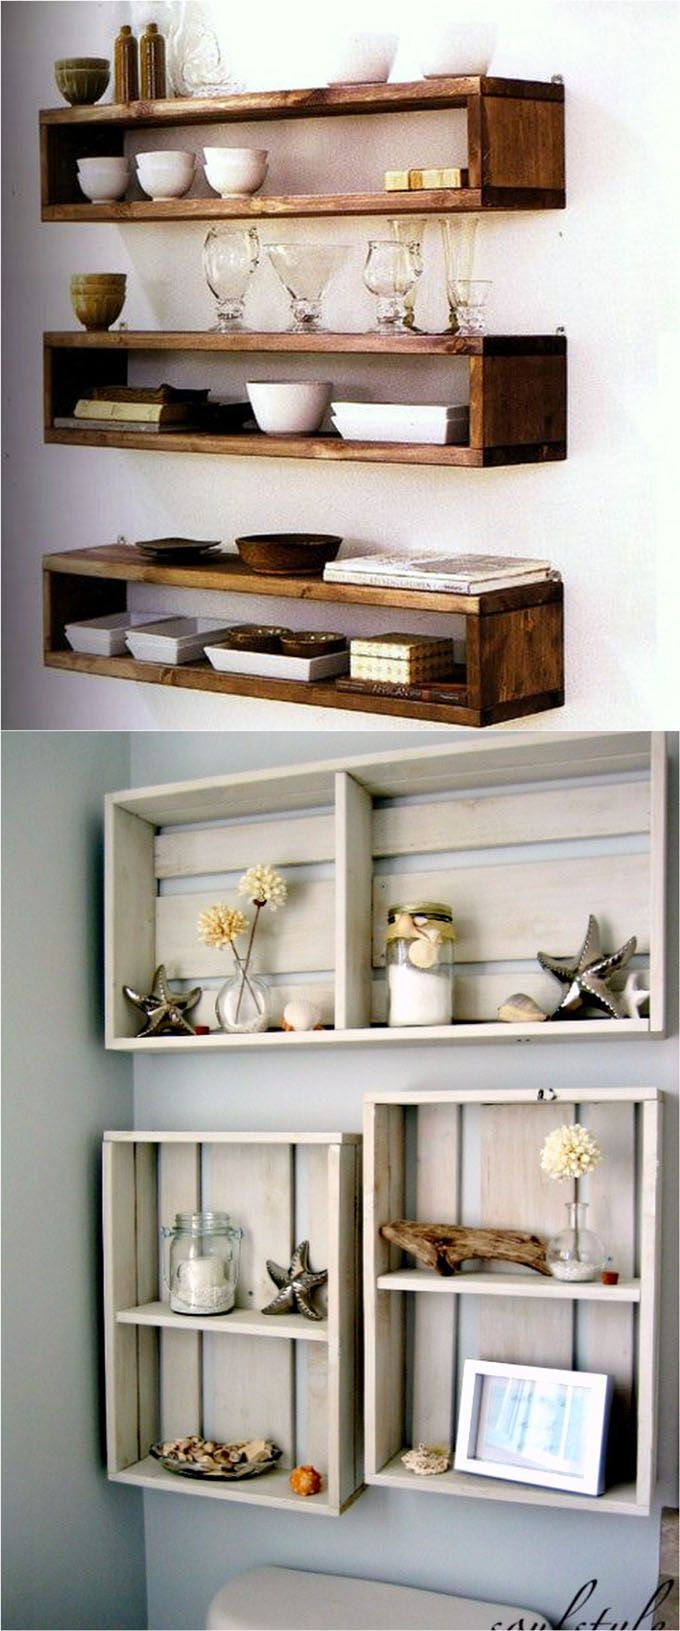 easy and stylish diy floating shelves wall pinners cube wood extra large bloggers home decor mounted wooden kitchen trolley cupboards secret cabinet command hooks that hold lbs